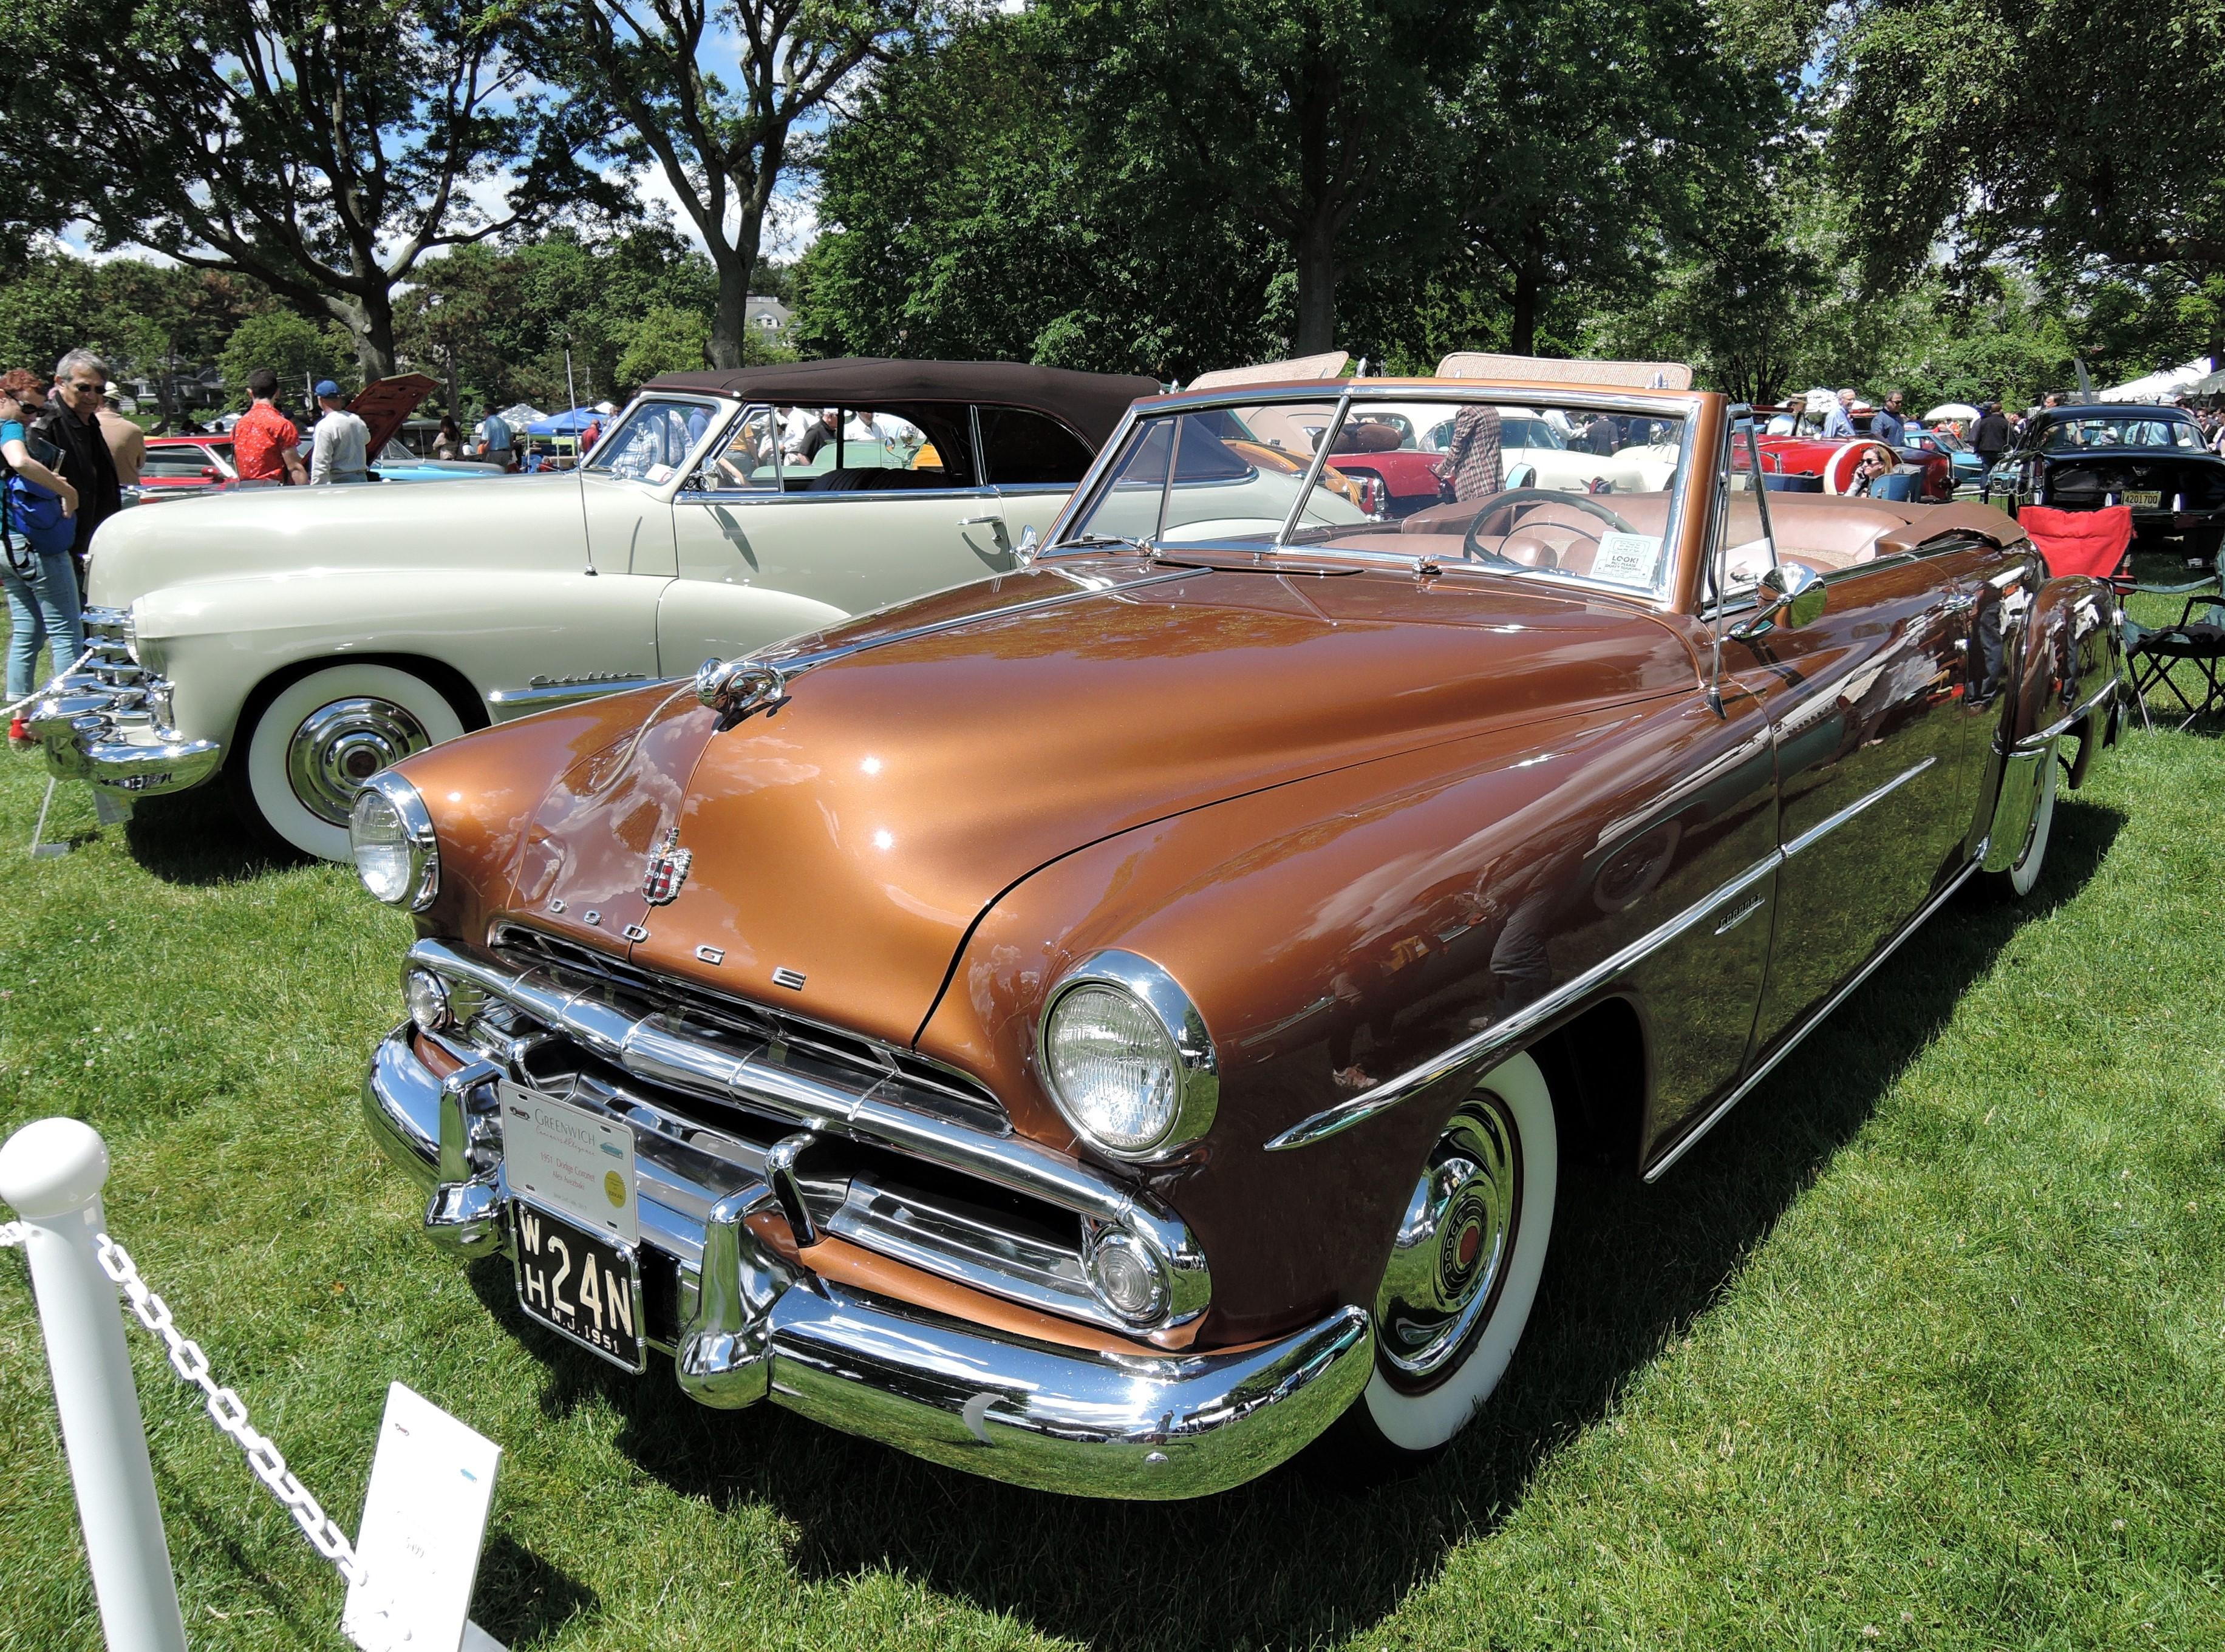 copper 1951 Dodge Coronet - Greenwich Concours d'Elegance 2017